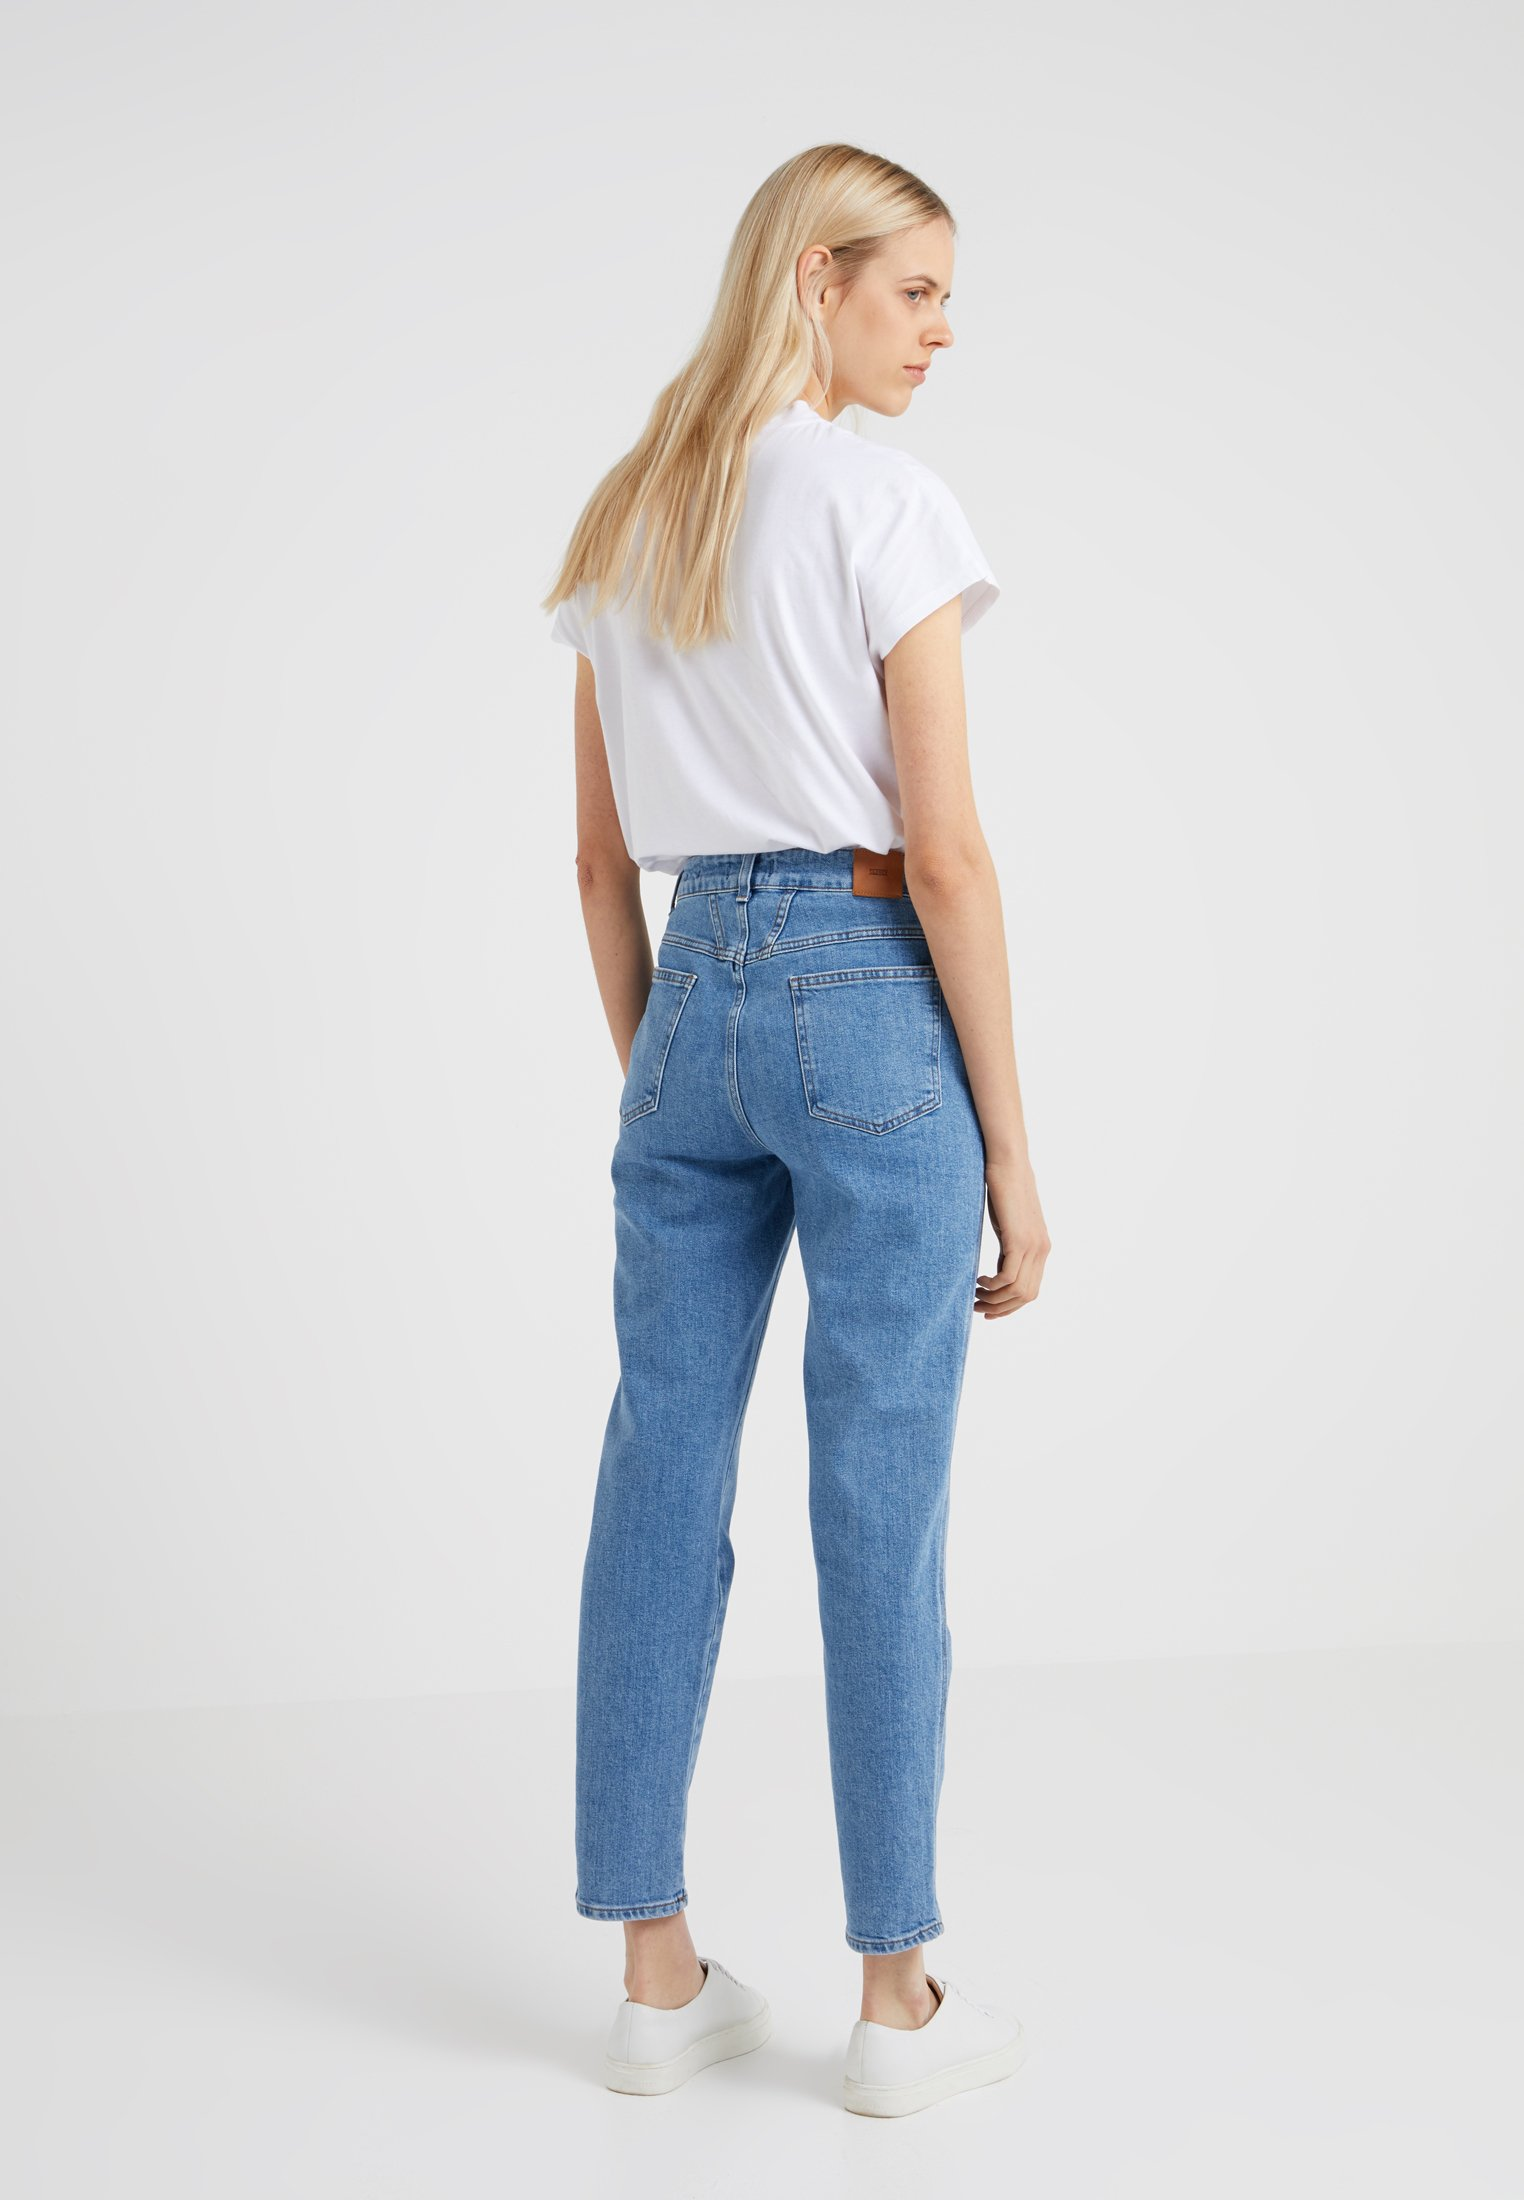 PusherJean Blue Boyfriend Mid Pedal Closed qSUMpzV